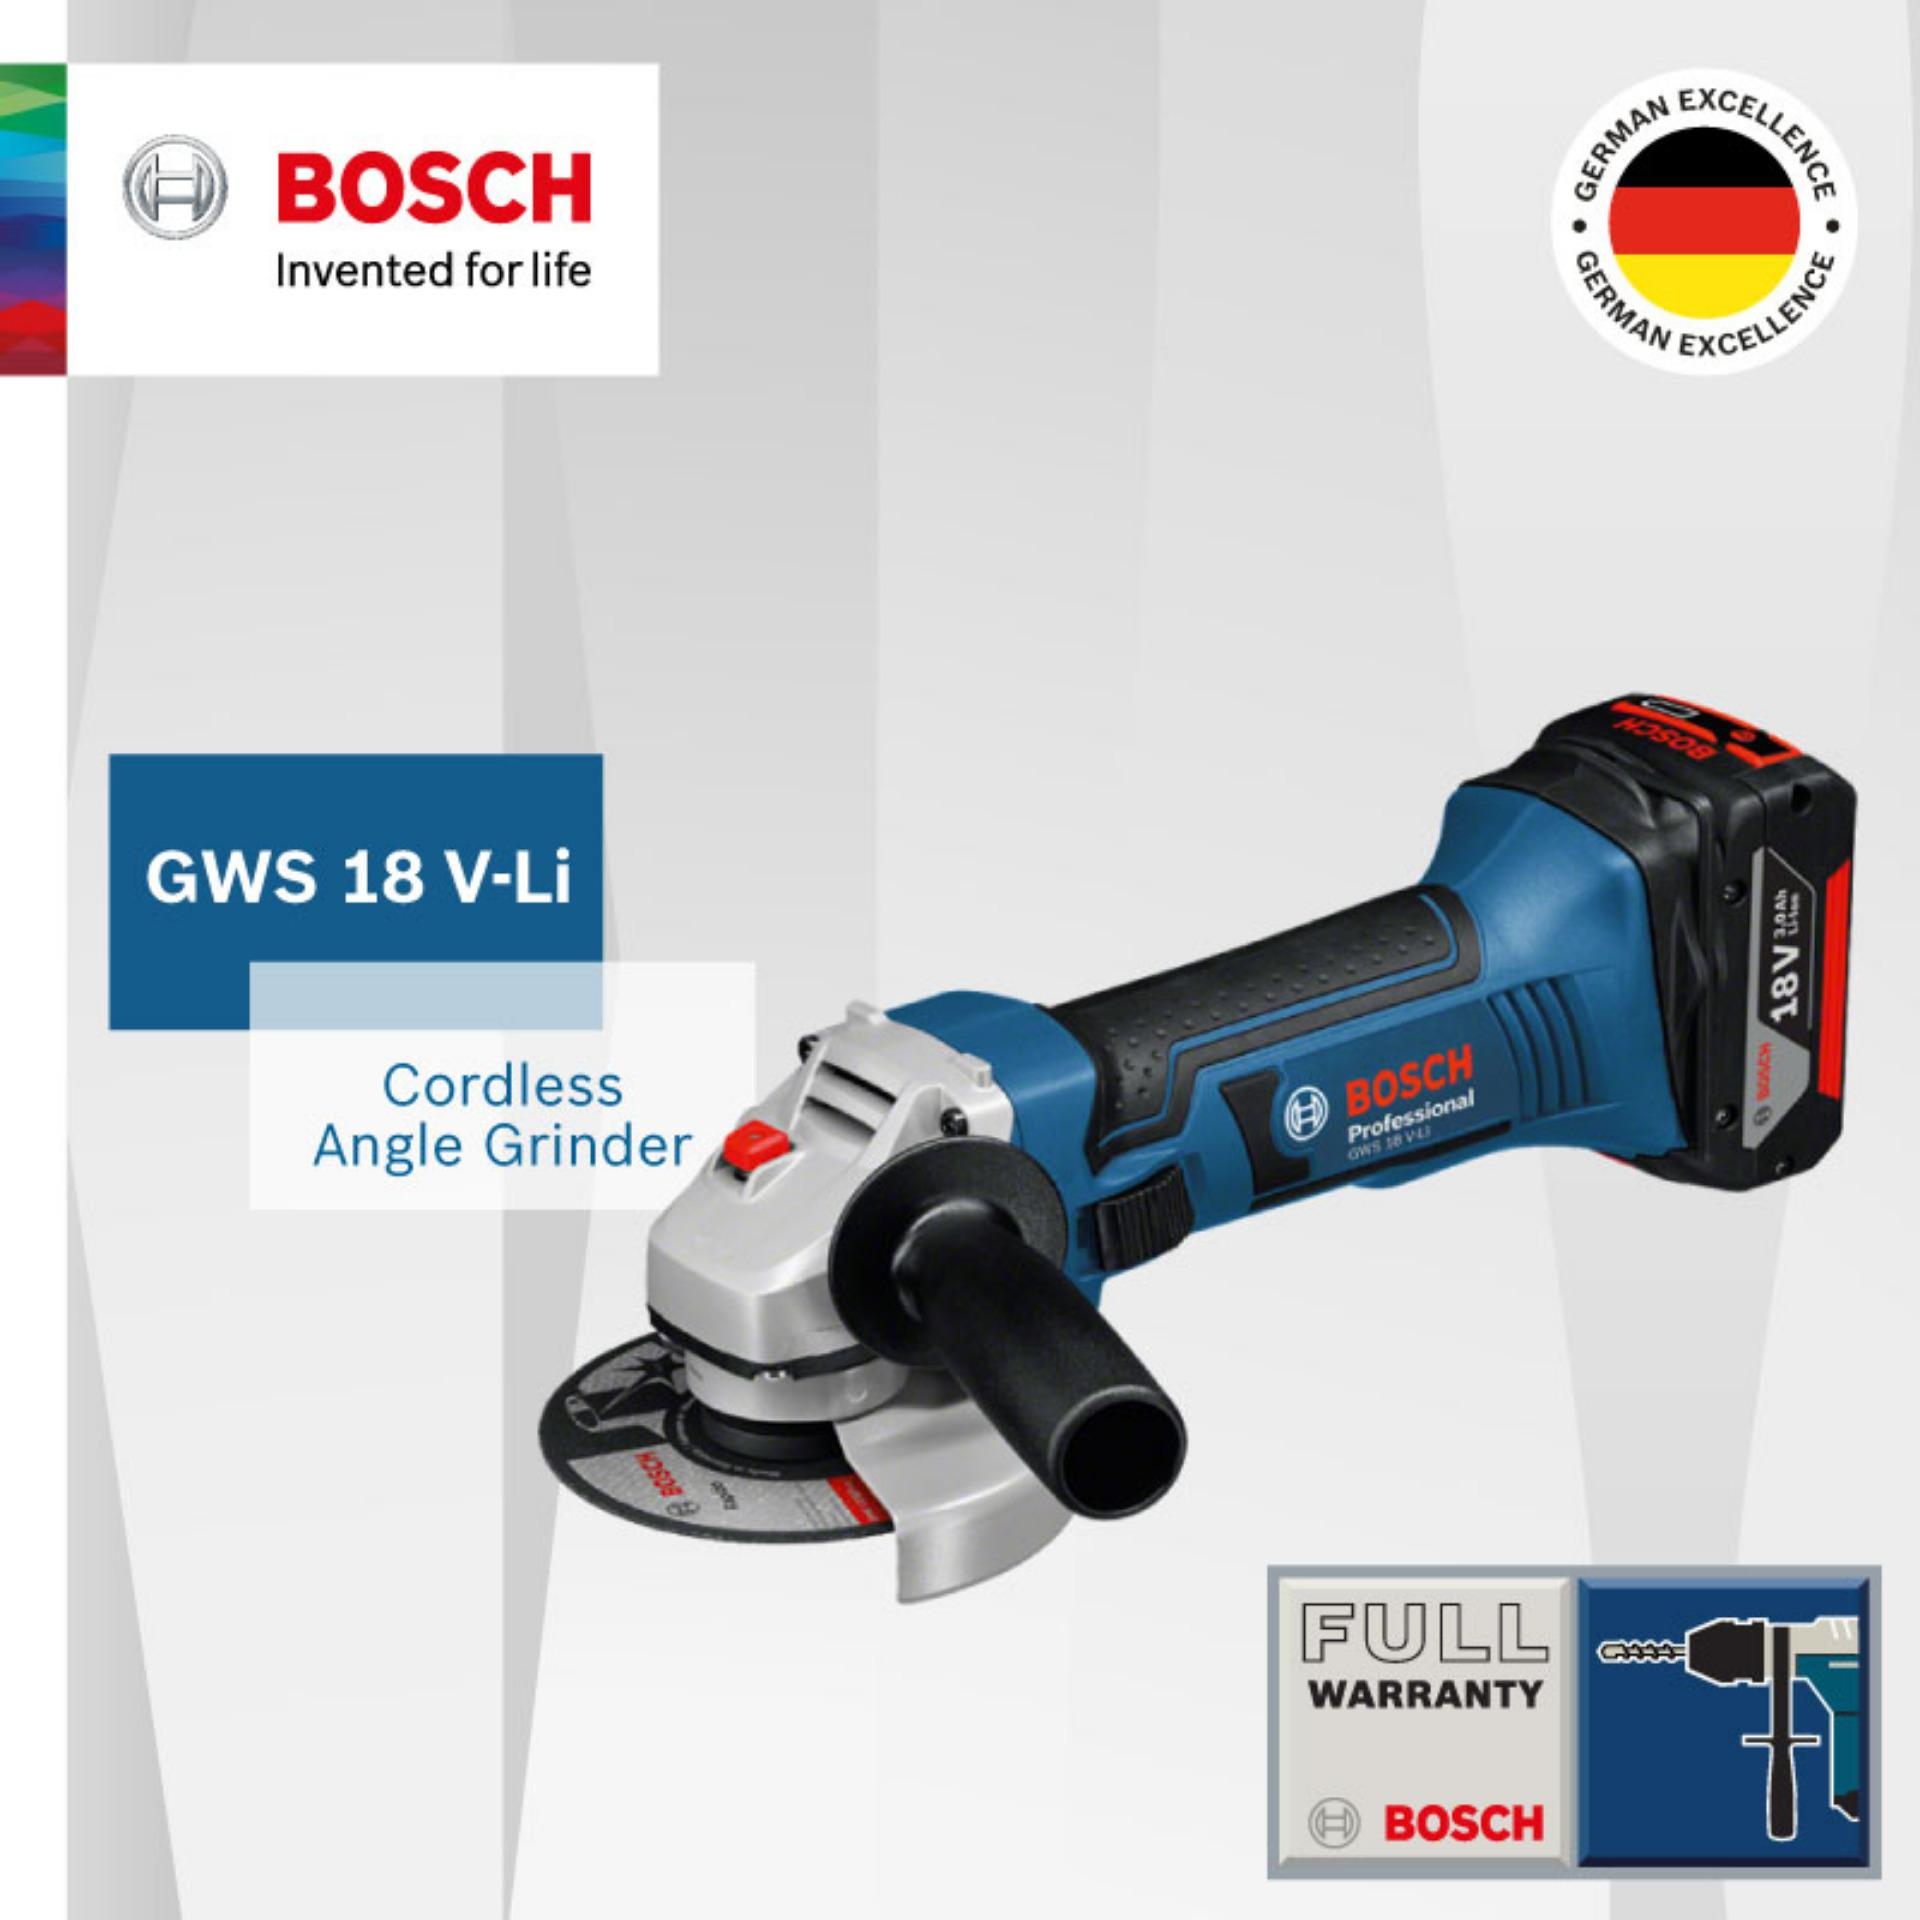 Bosch GWS 18V-Li Cordless Angle Grinder 18V (BARE TOOLS ONLY) Singapore